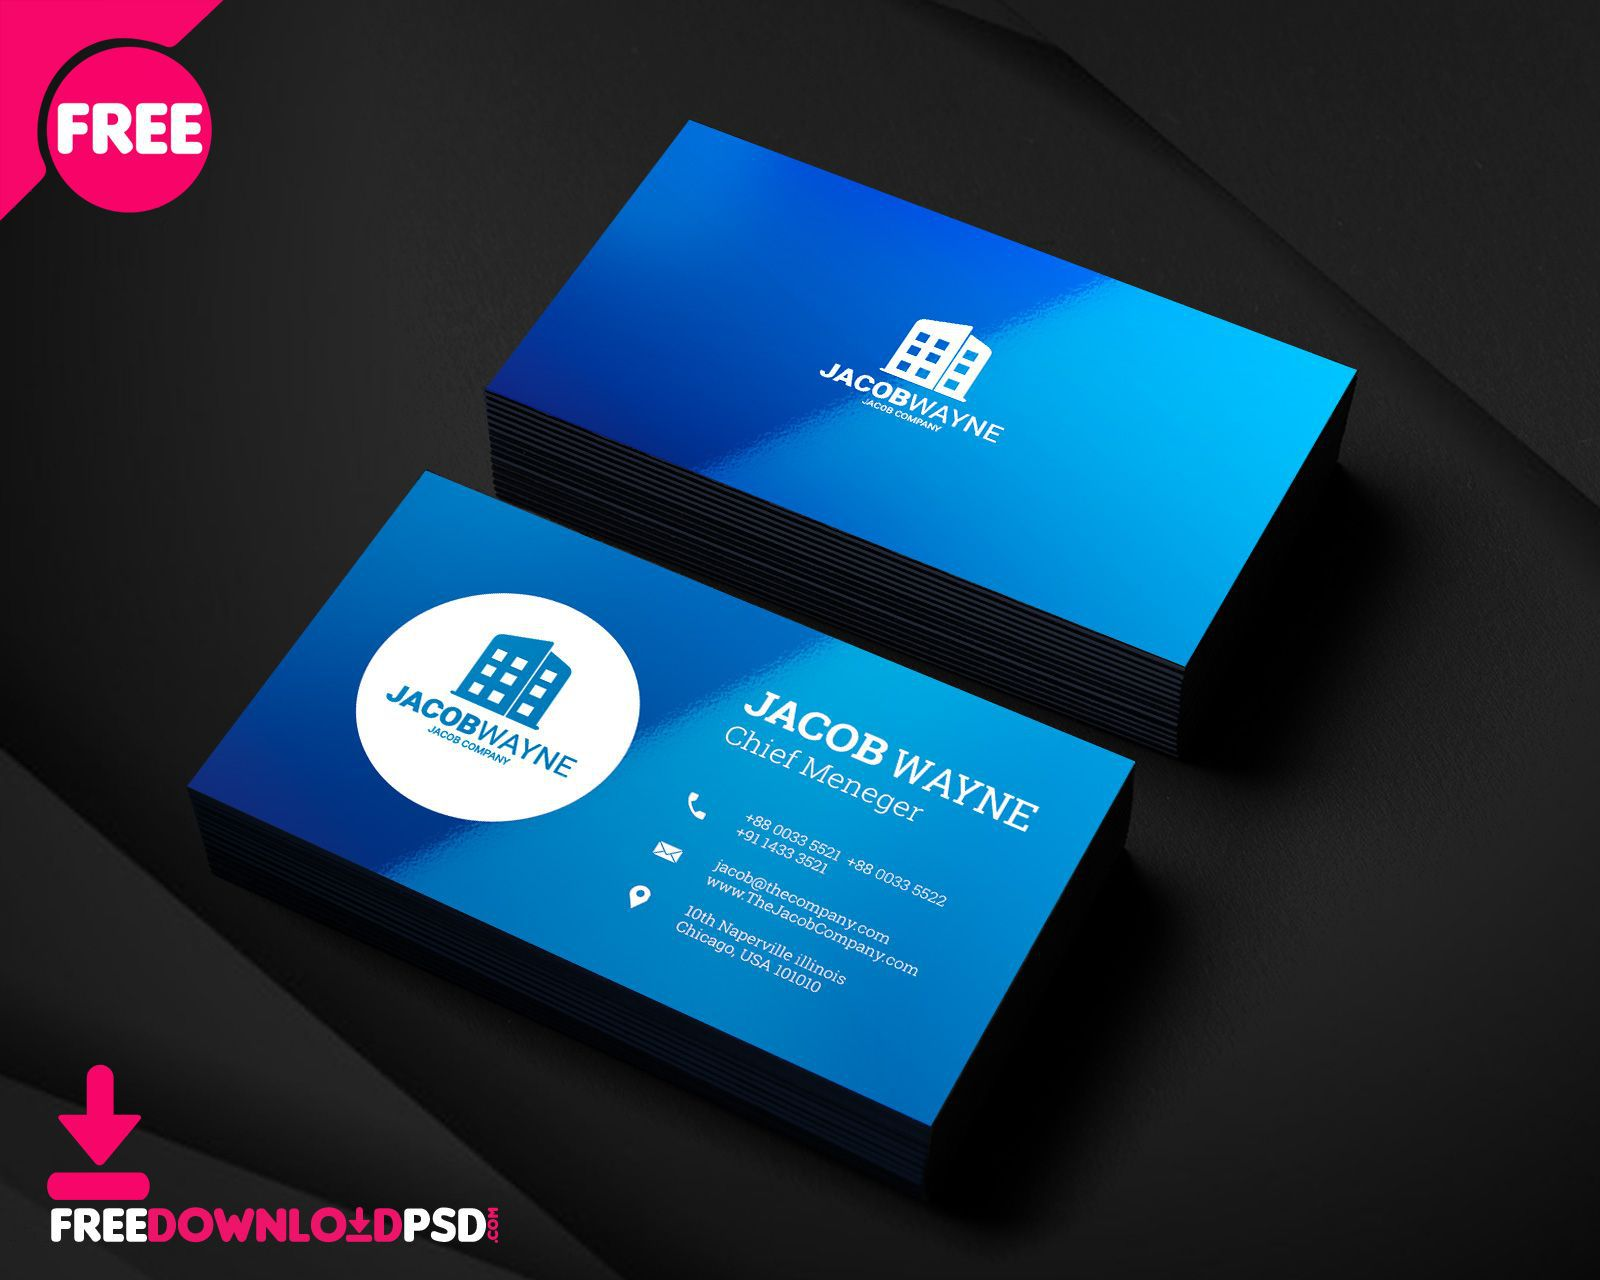 004 Rare Blank Busines Card Template Psd Free Inspiration  Photoshop DownloadFull